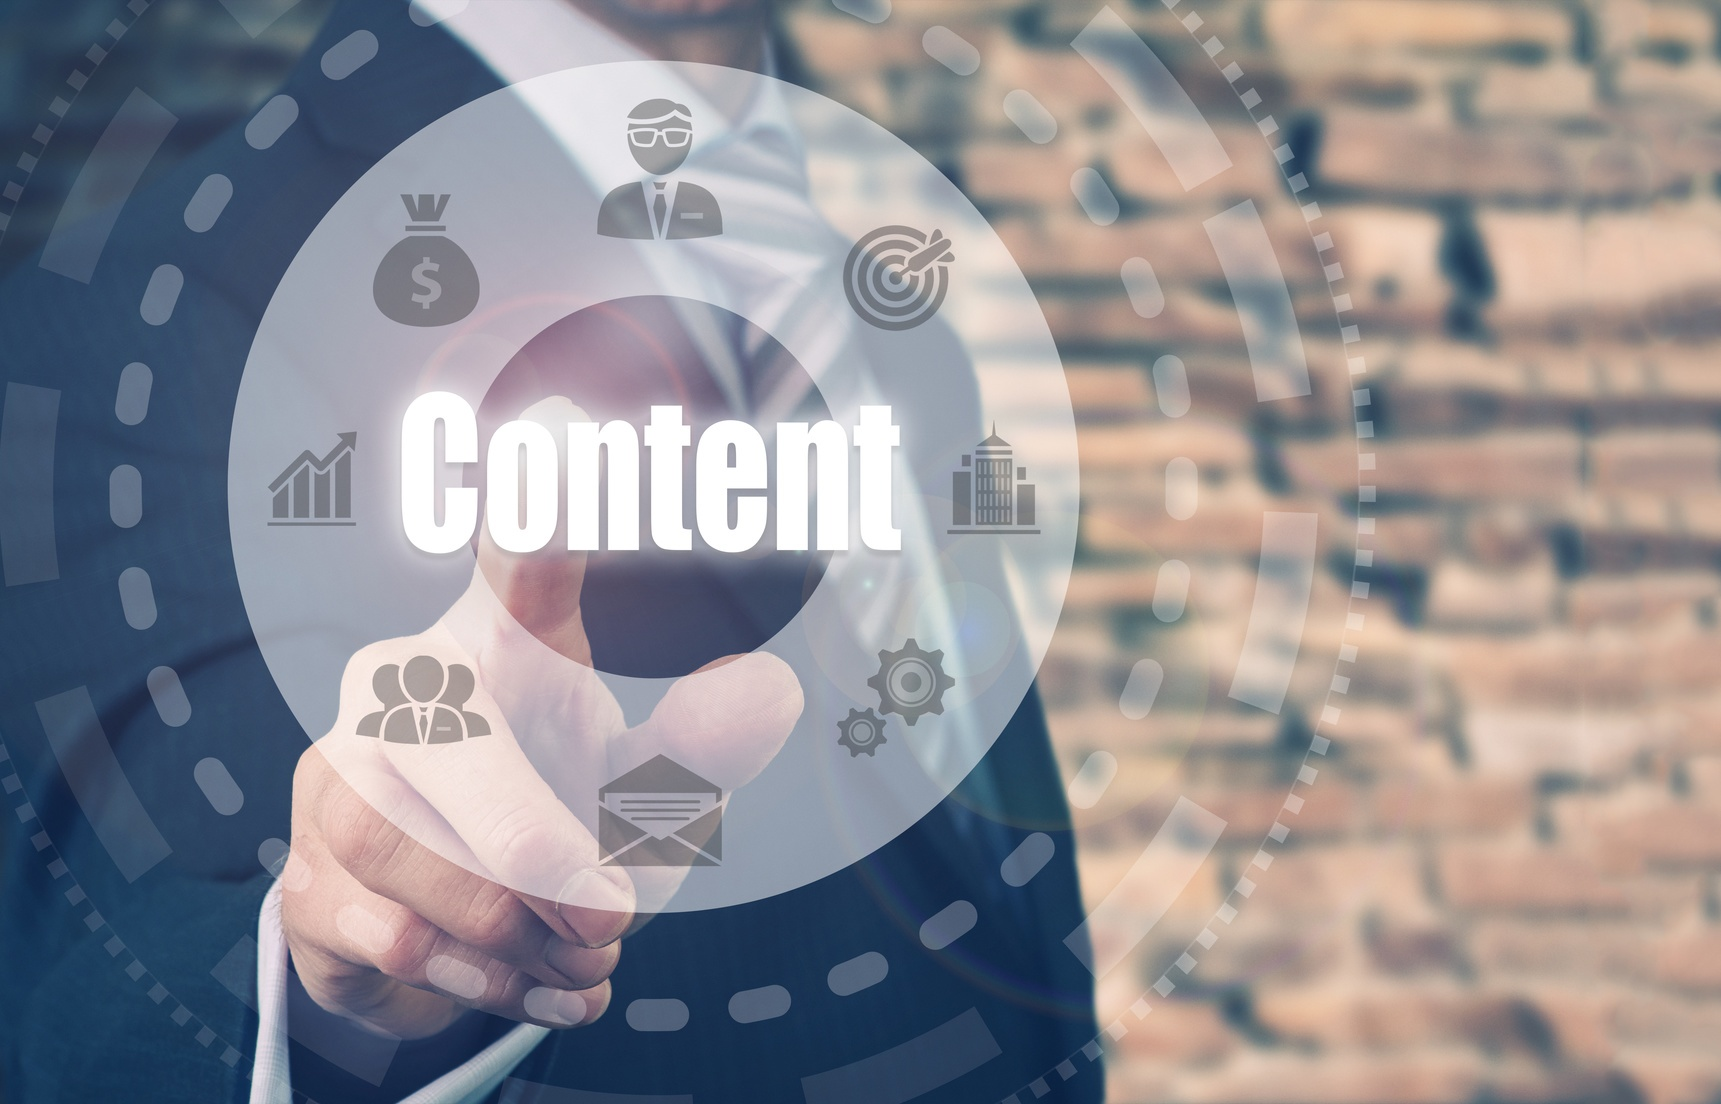 5 Ways to Create Website Content People Will Share